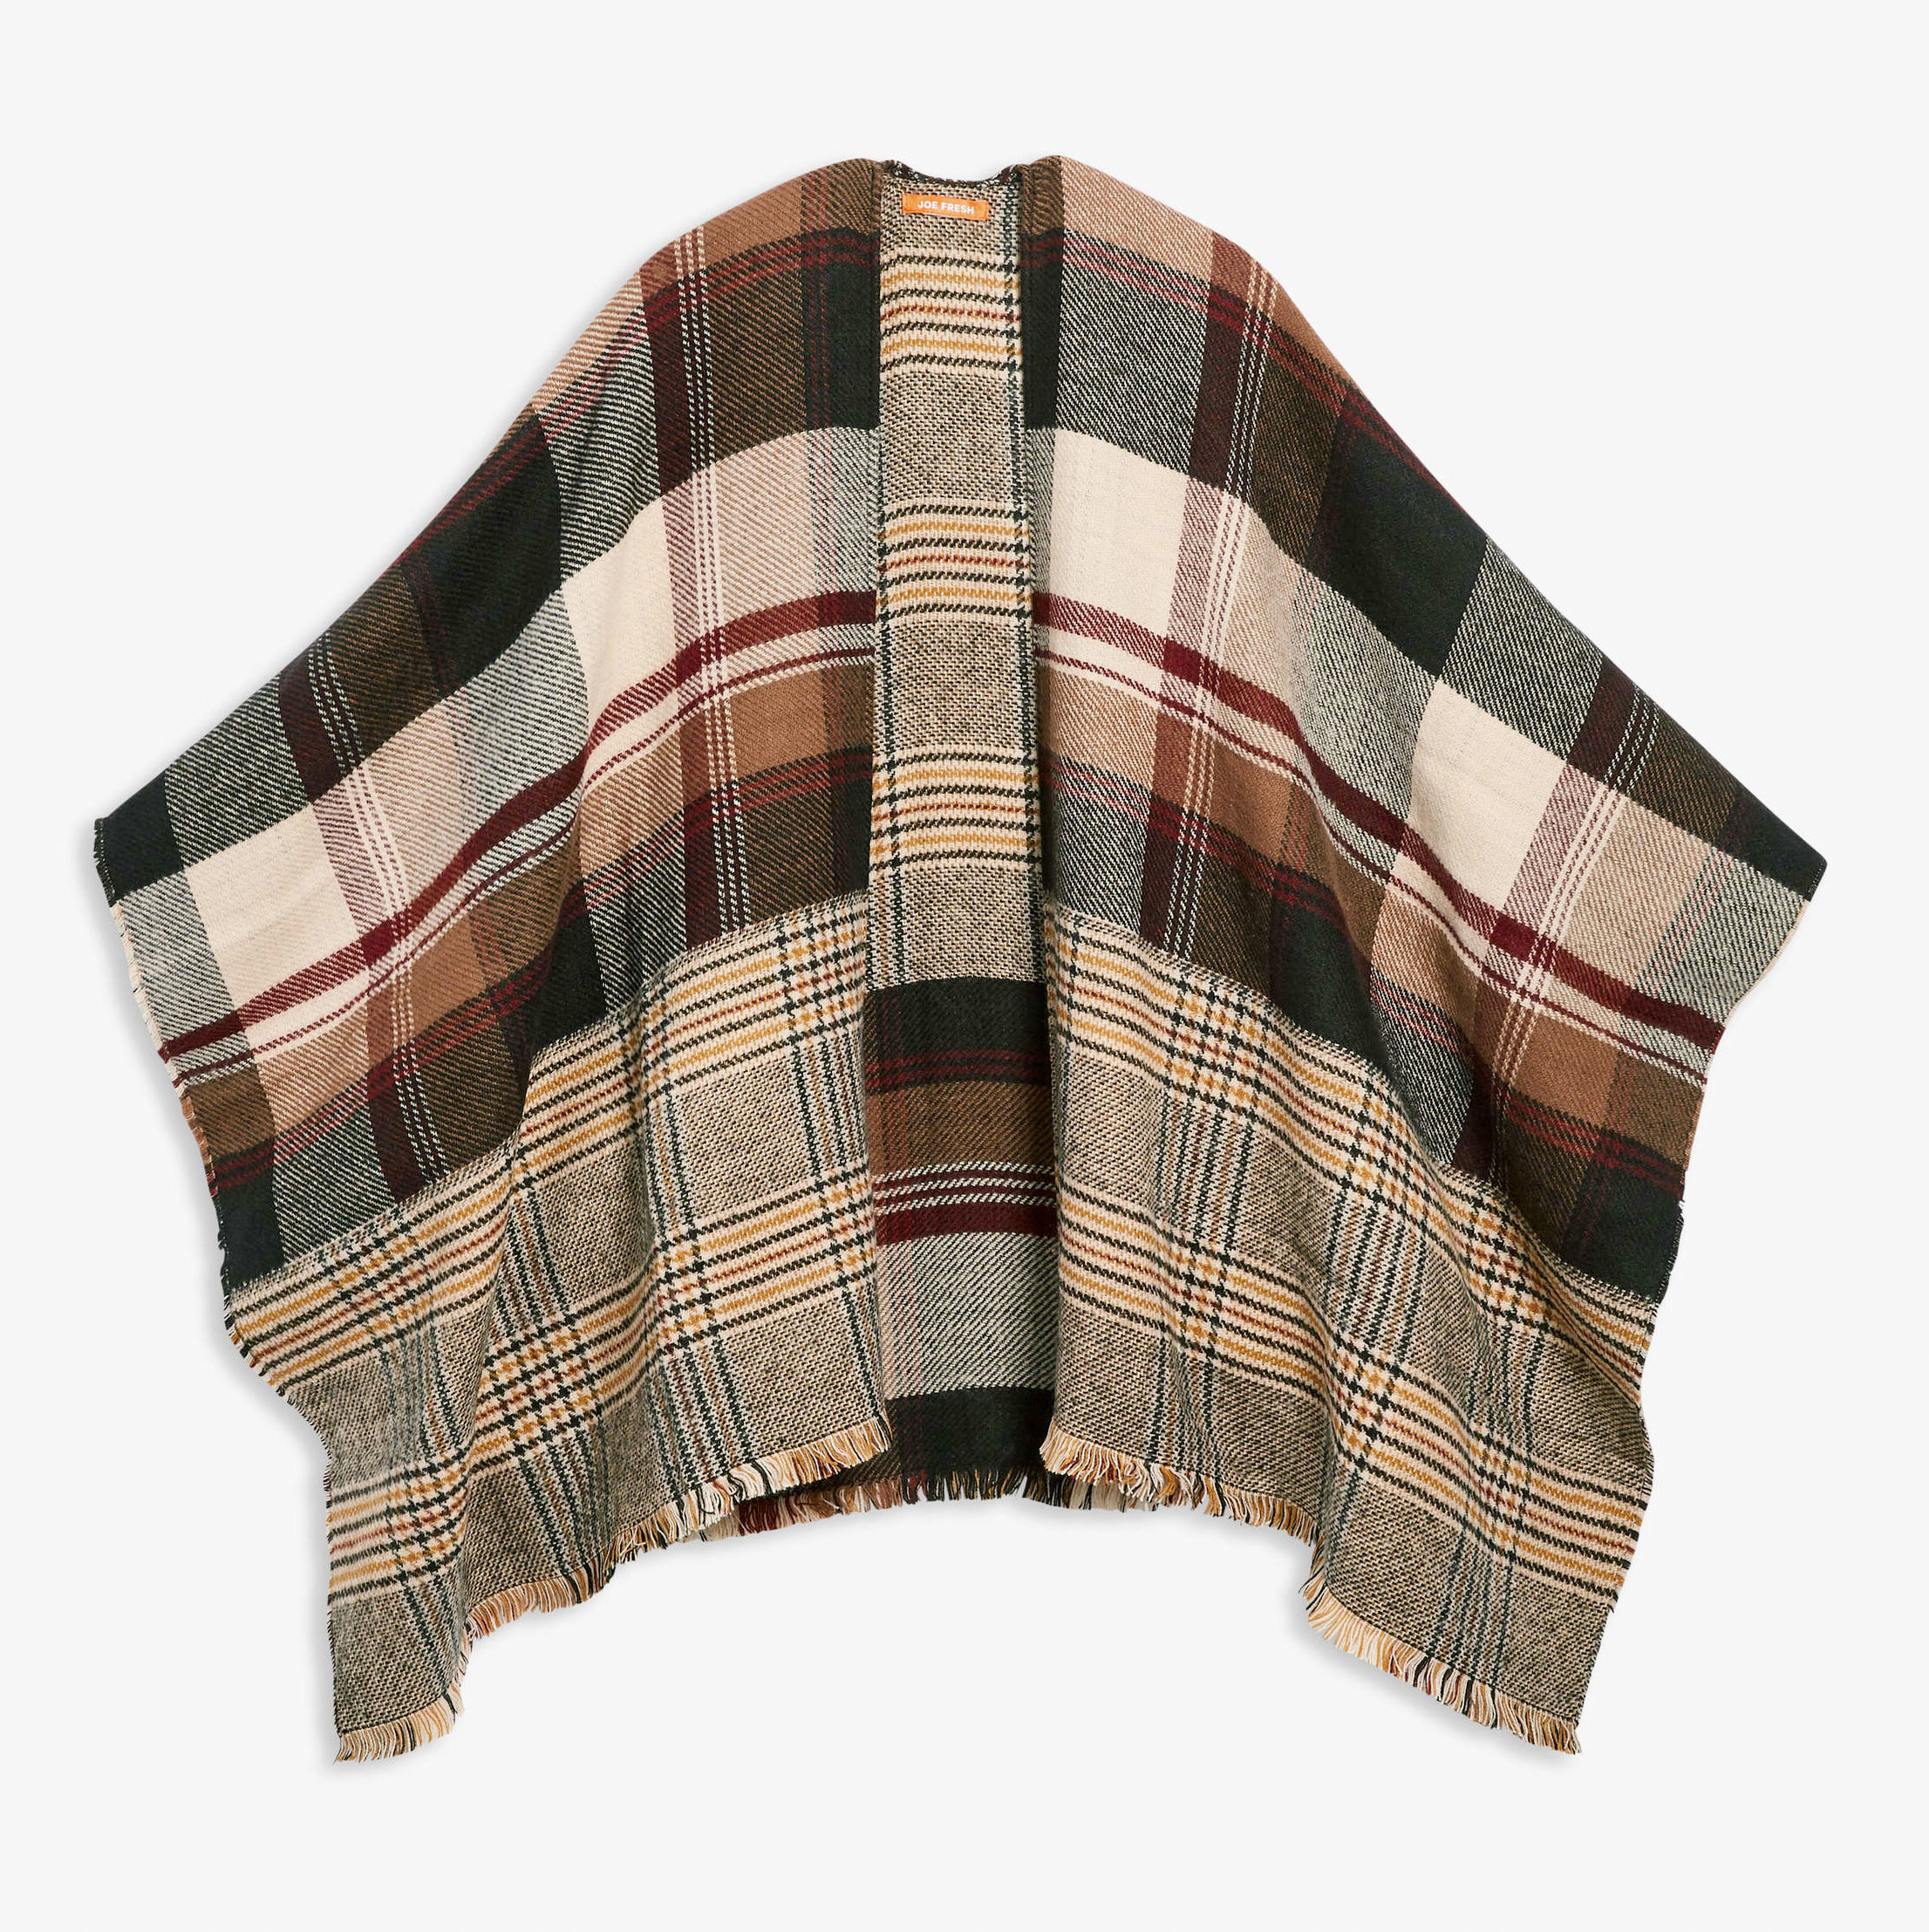 A reversible knit poncho with different plaid patterns